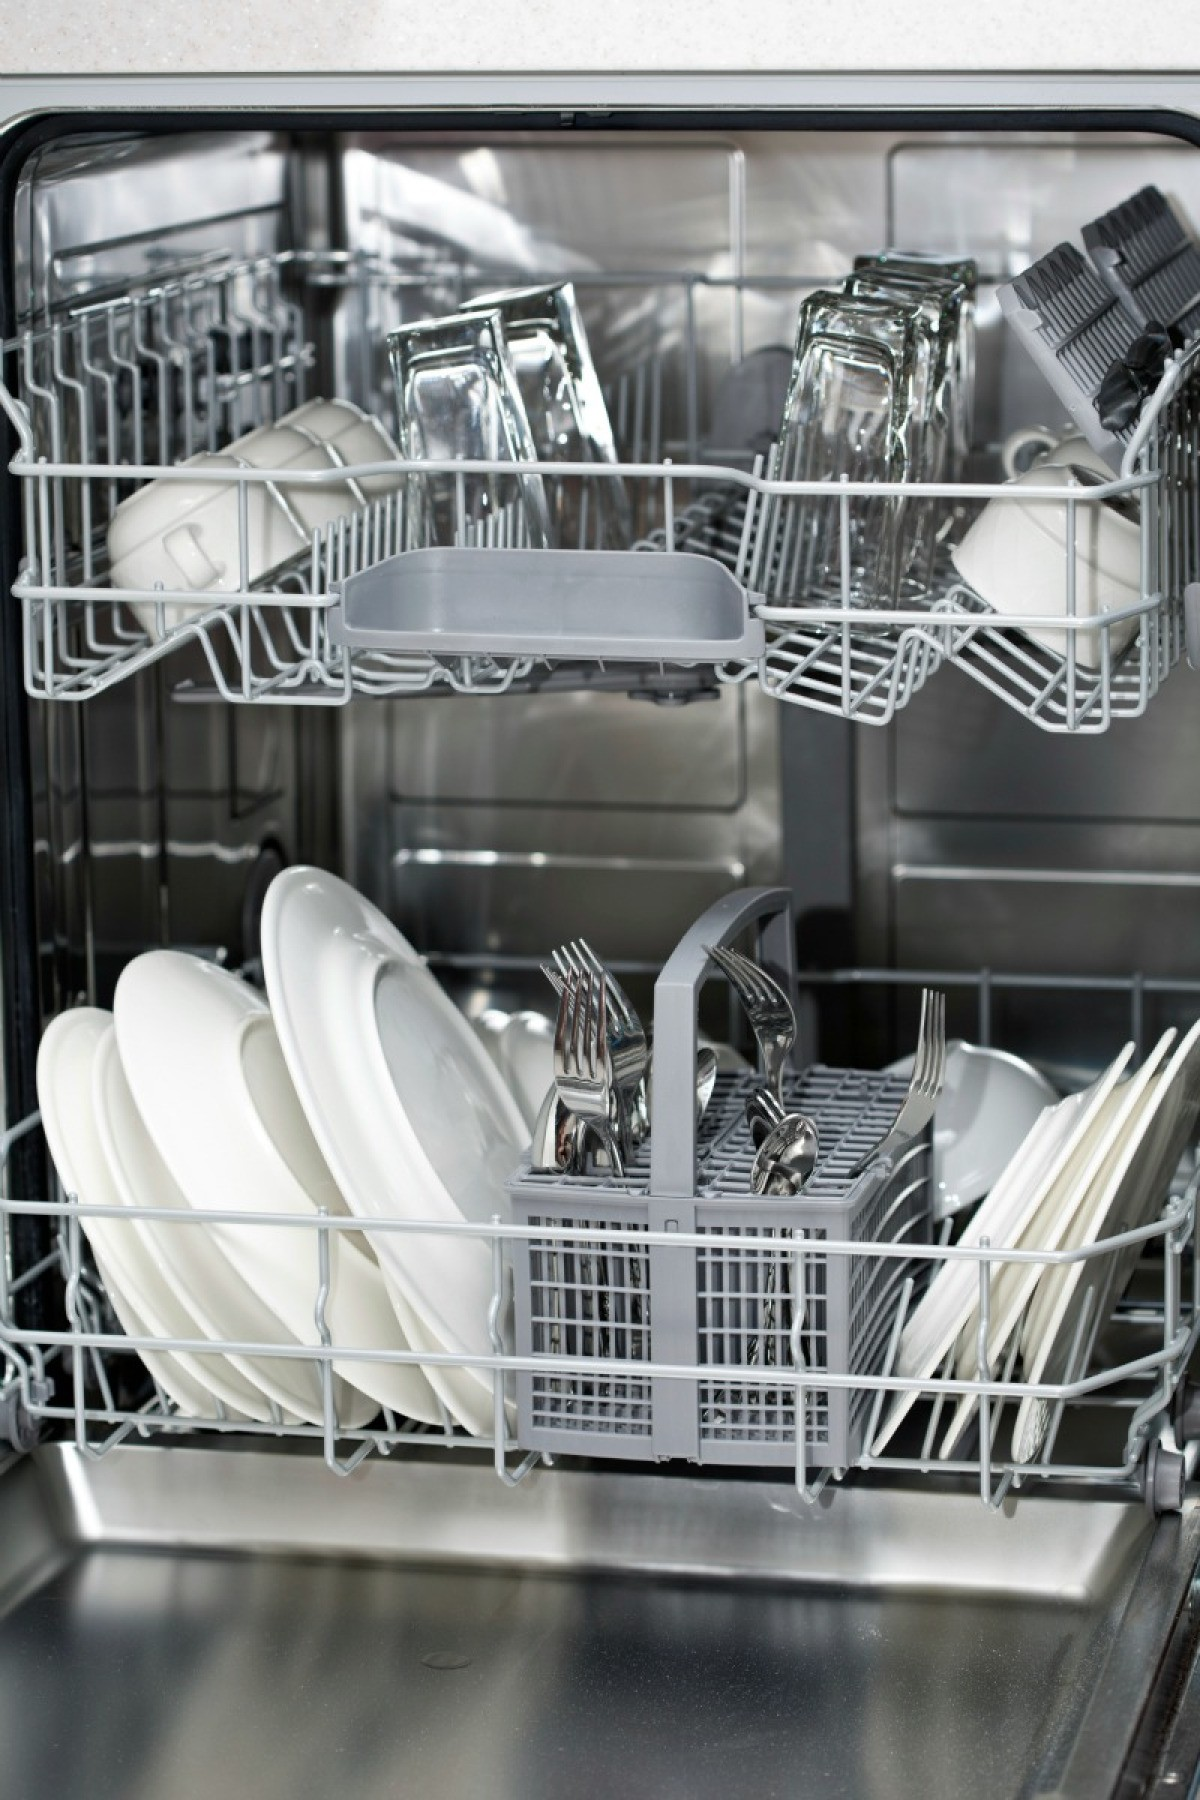 Dishwasher Not Spraying Water Thriftyfun